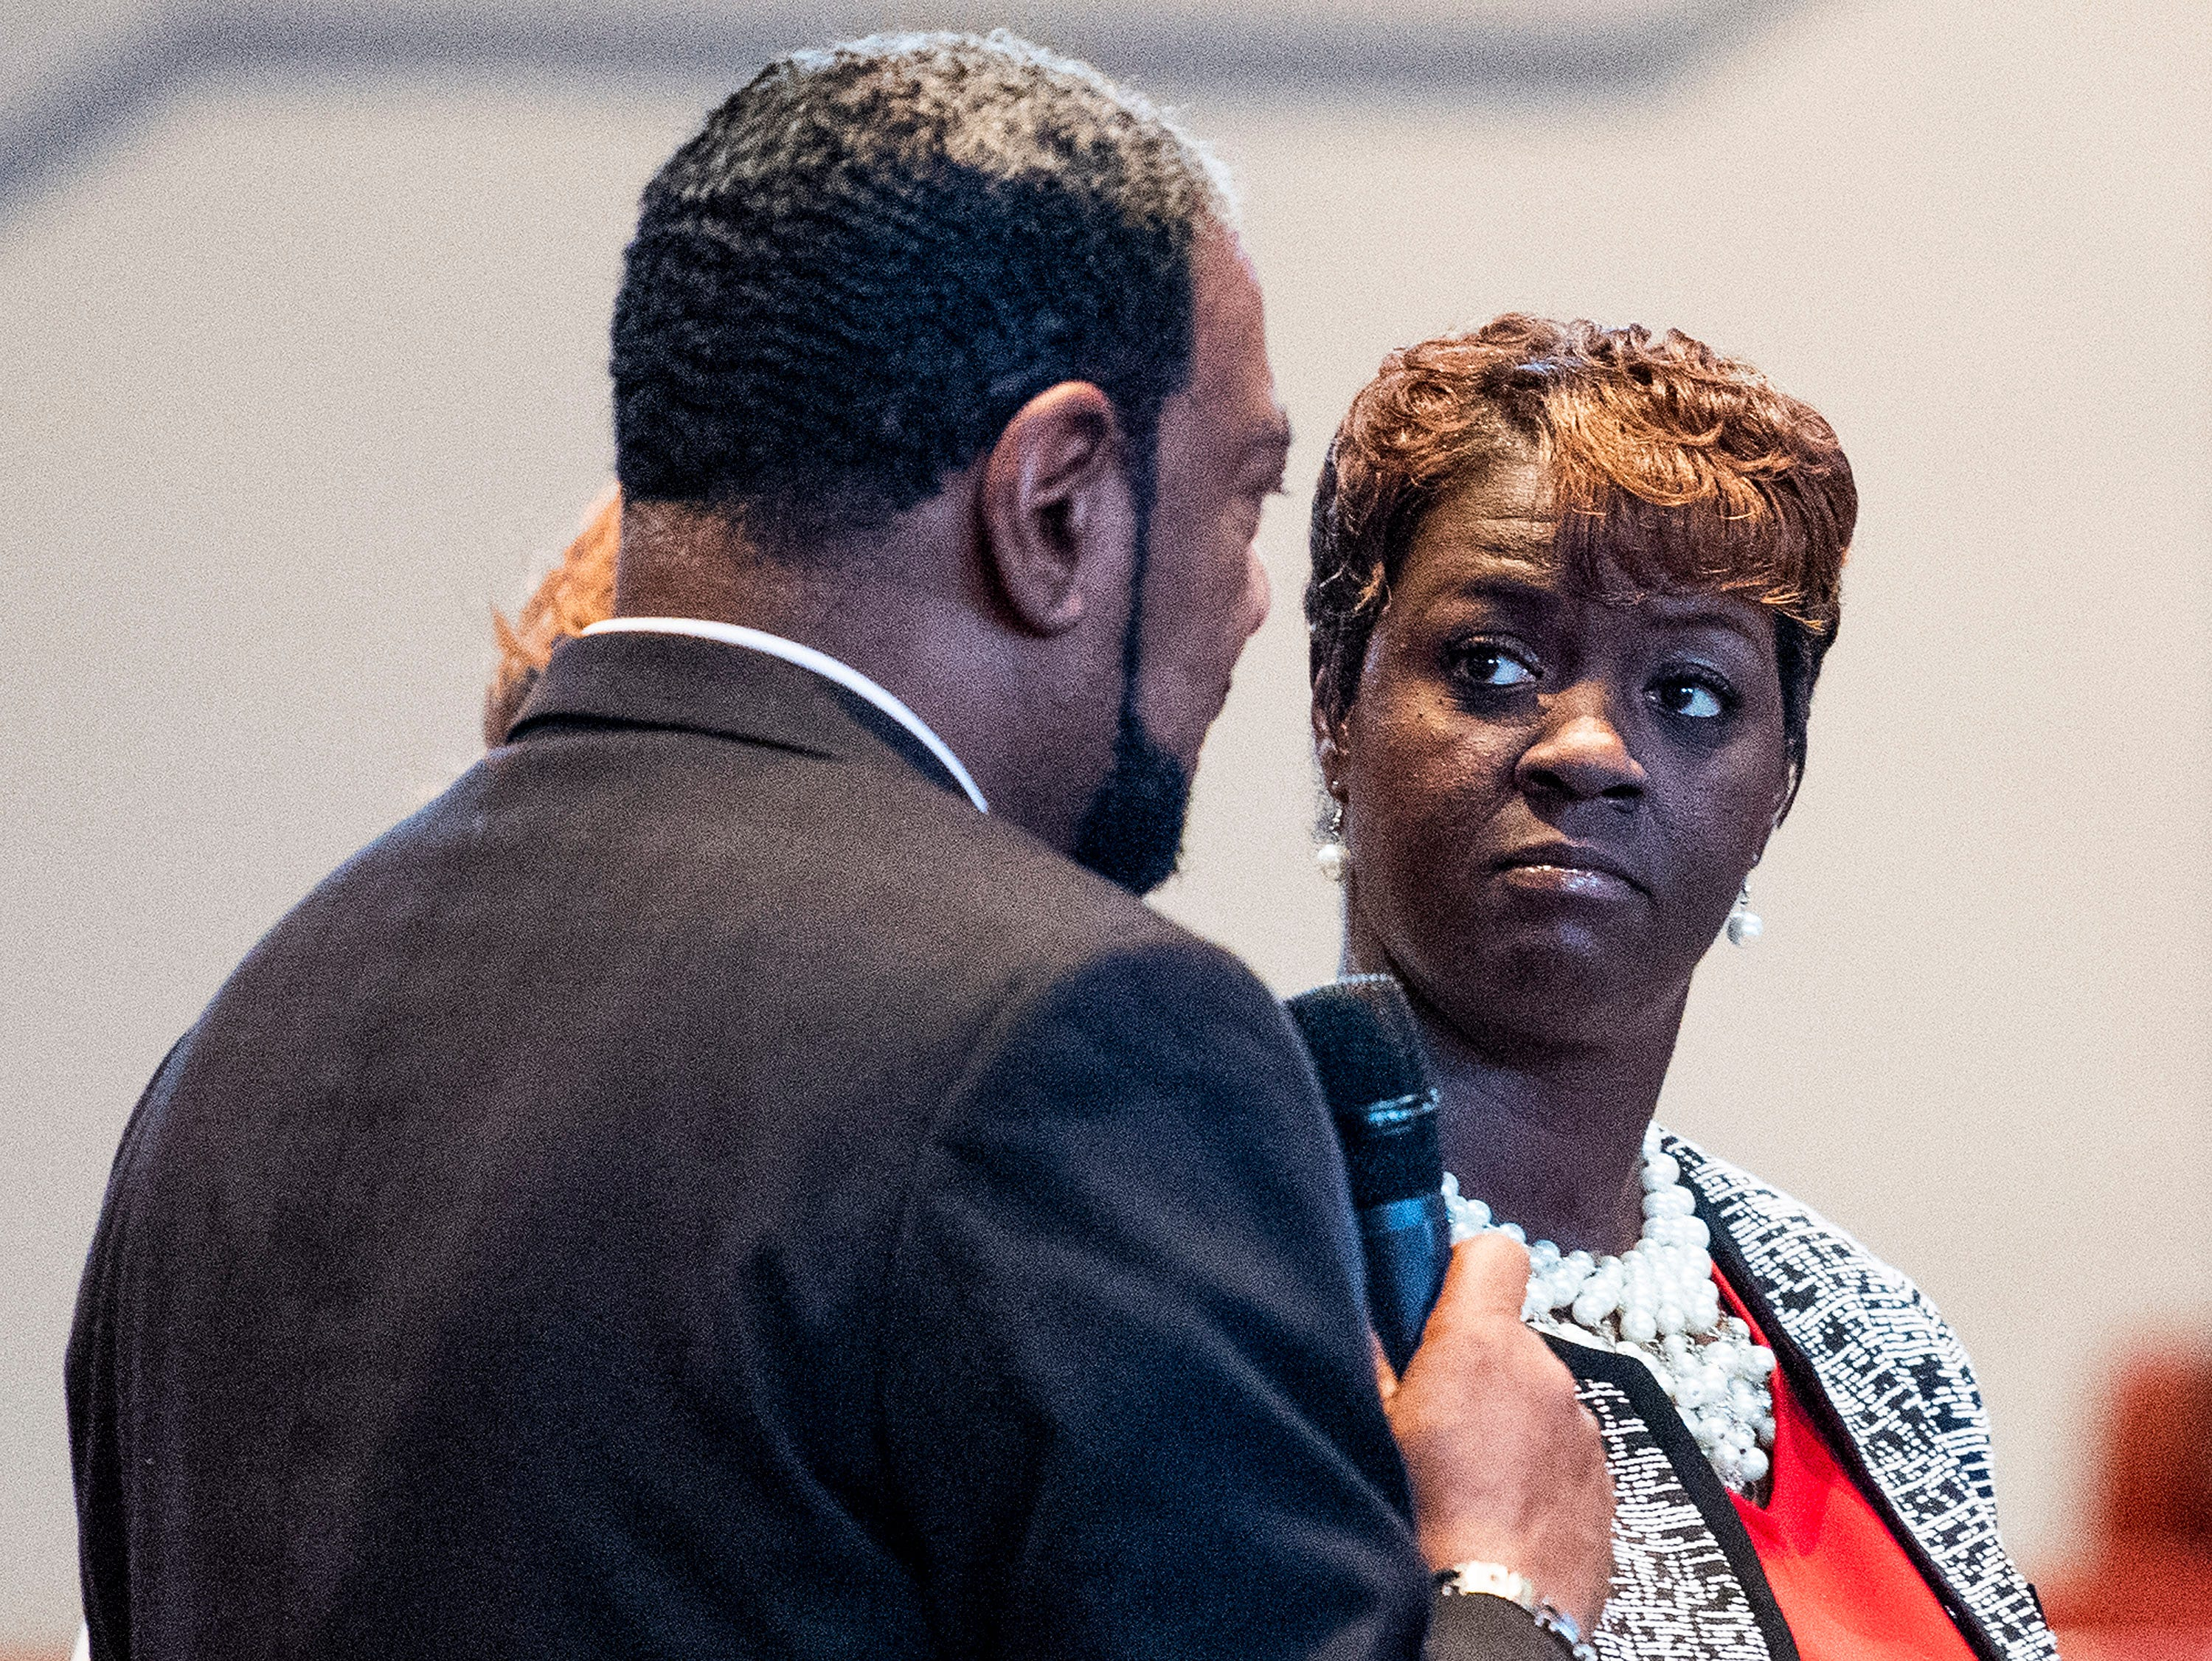 Representative Tashina Morris during her swearing-in ceremony as a state representative at Freewill Baptist Church in Montgomery, Ala., on Wednesday November 7, 2018. Morris is Montgomery's first black female legislator.